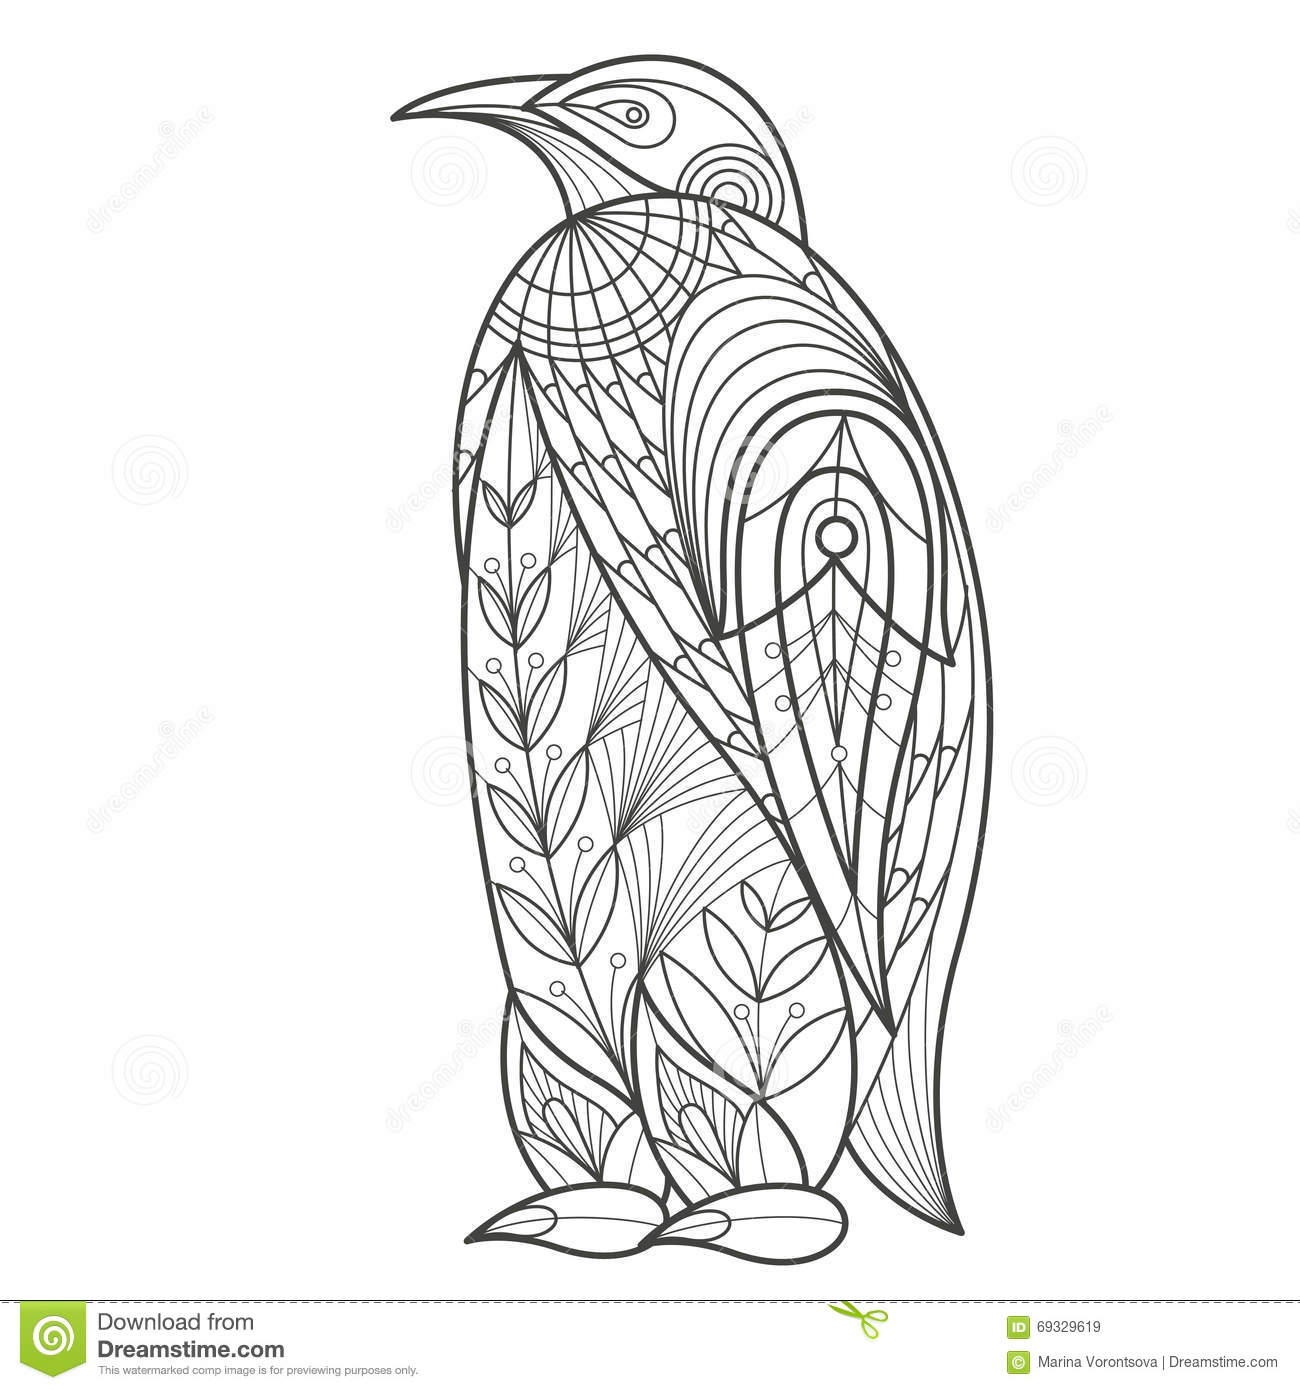 Adult coloring bird penguin stock vector image 69329619 for Penguin adult coloring pages